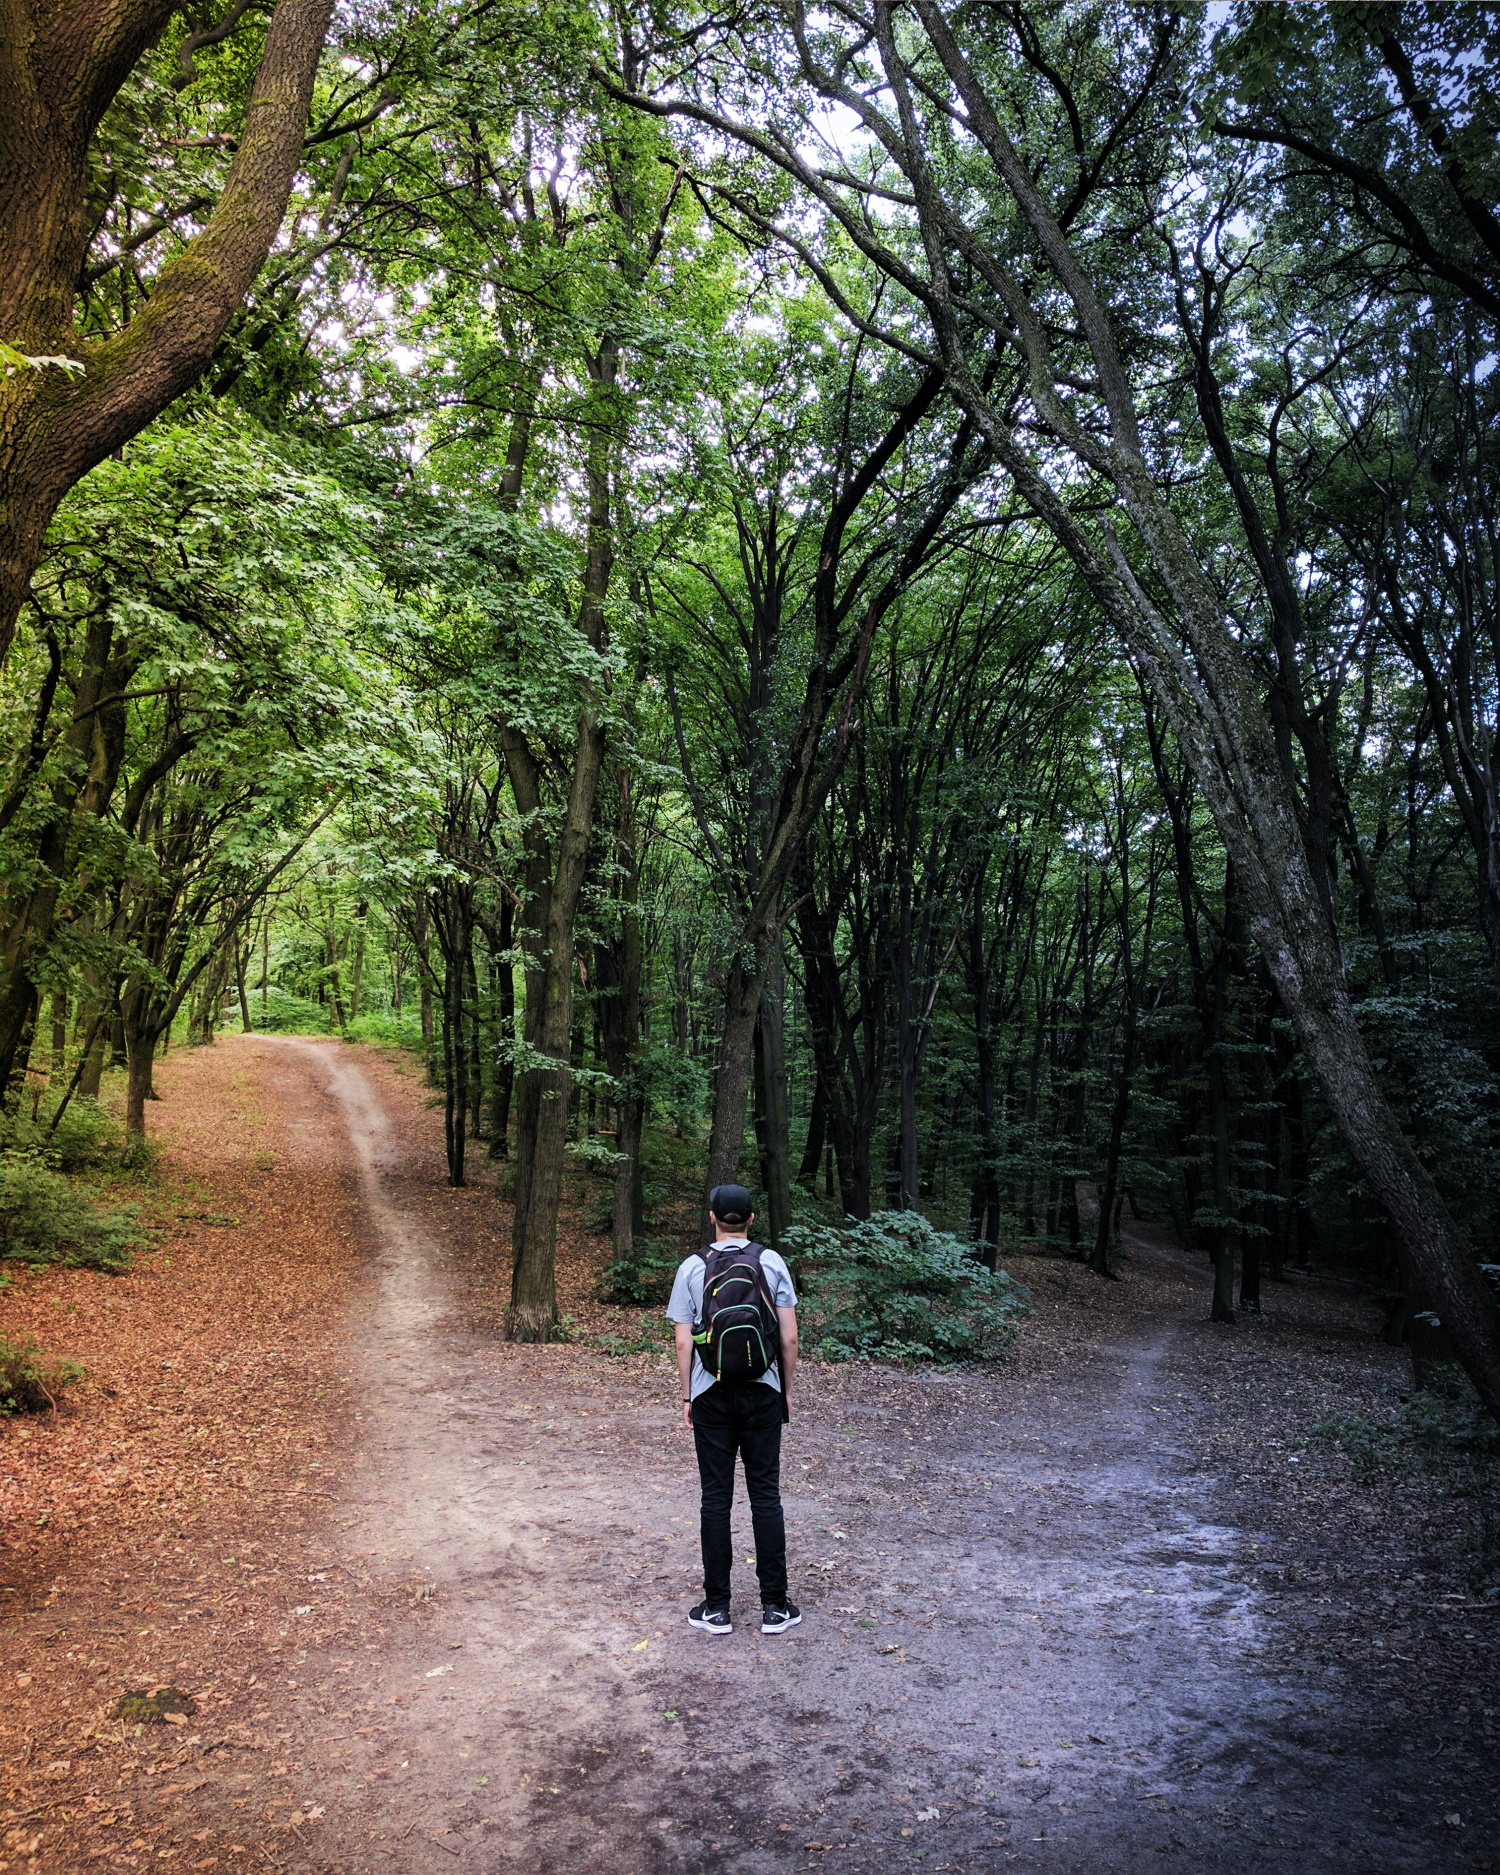 Man standing in a wood at a fork where paths diverge